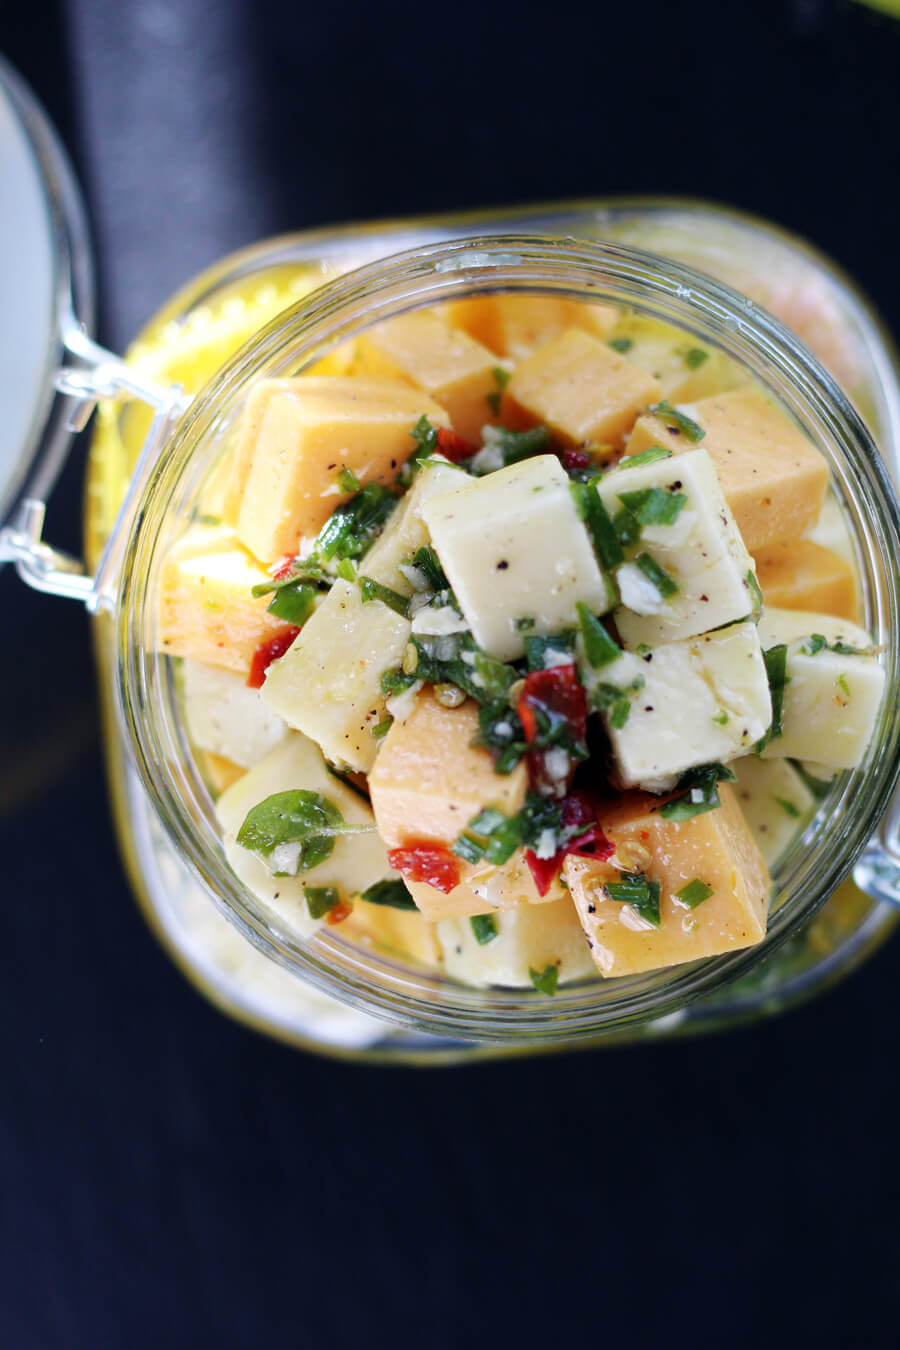 An overhead close up view of the cheddar cheese appetizer in a gift jar